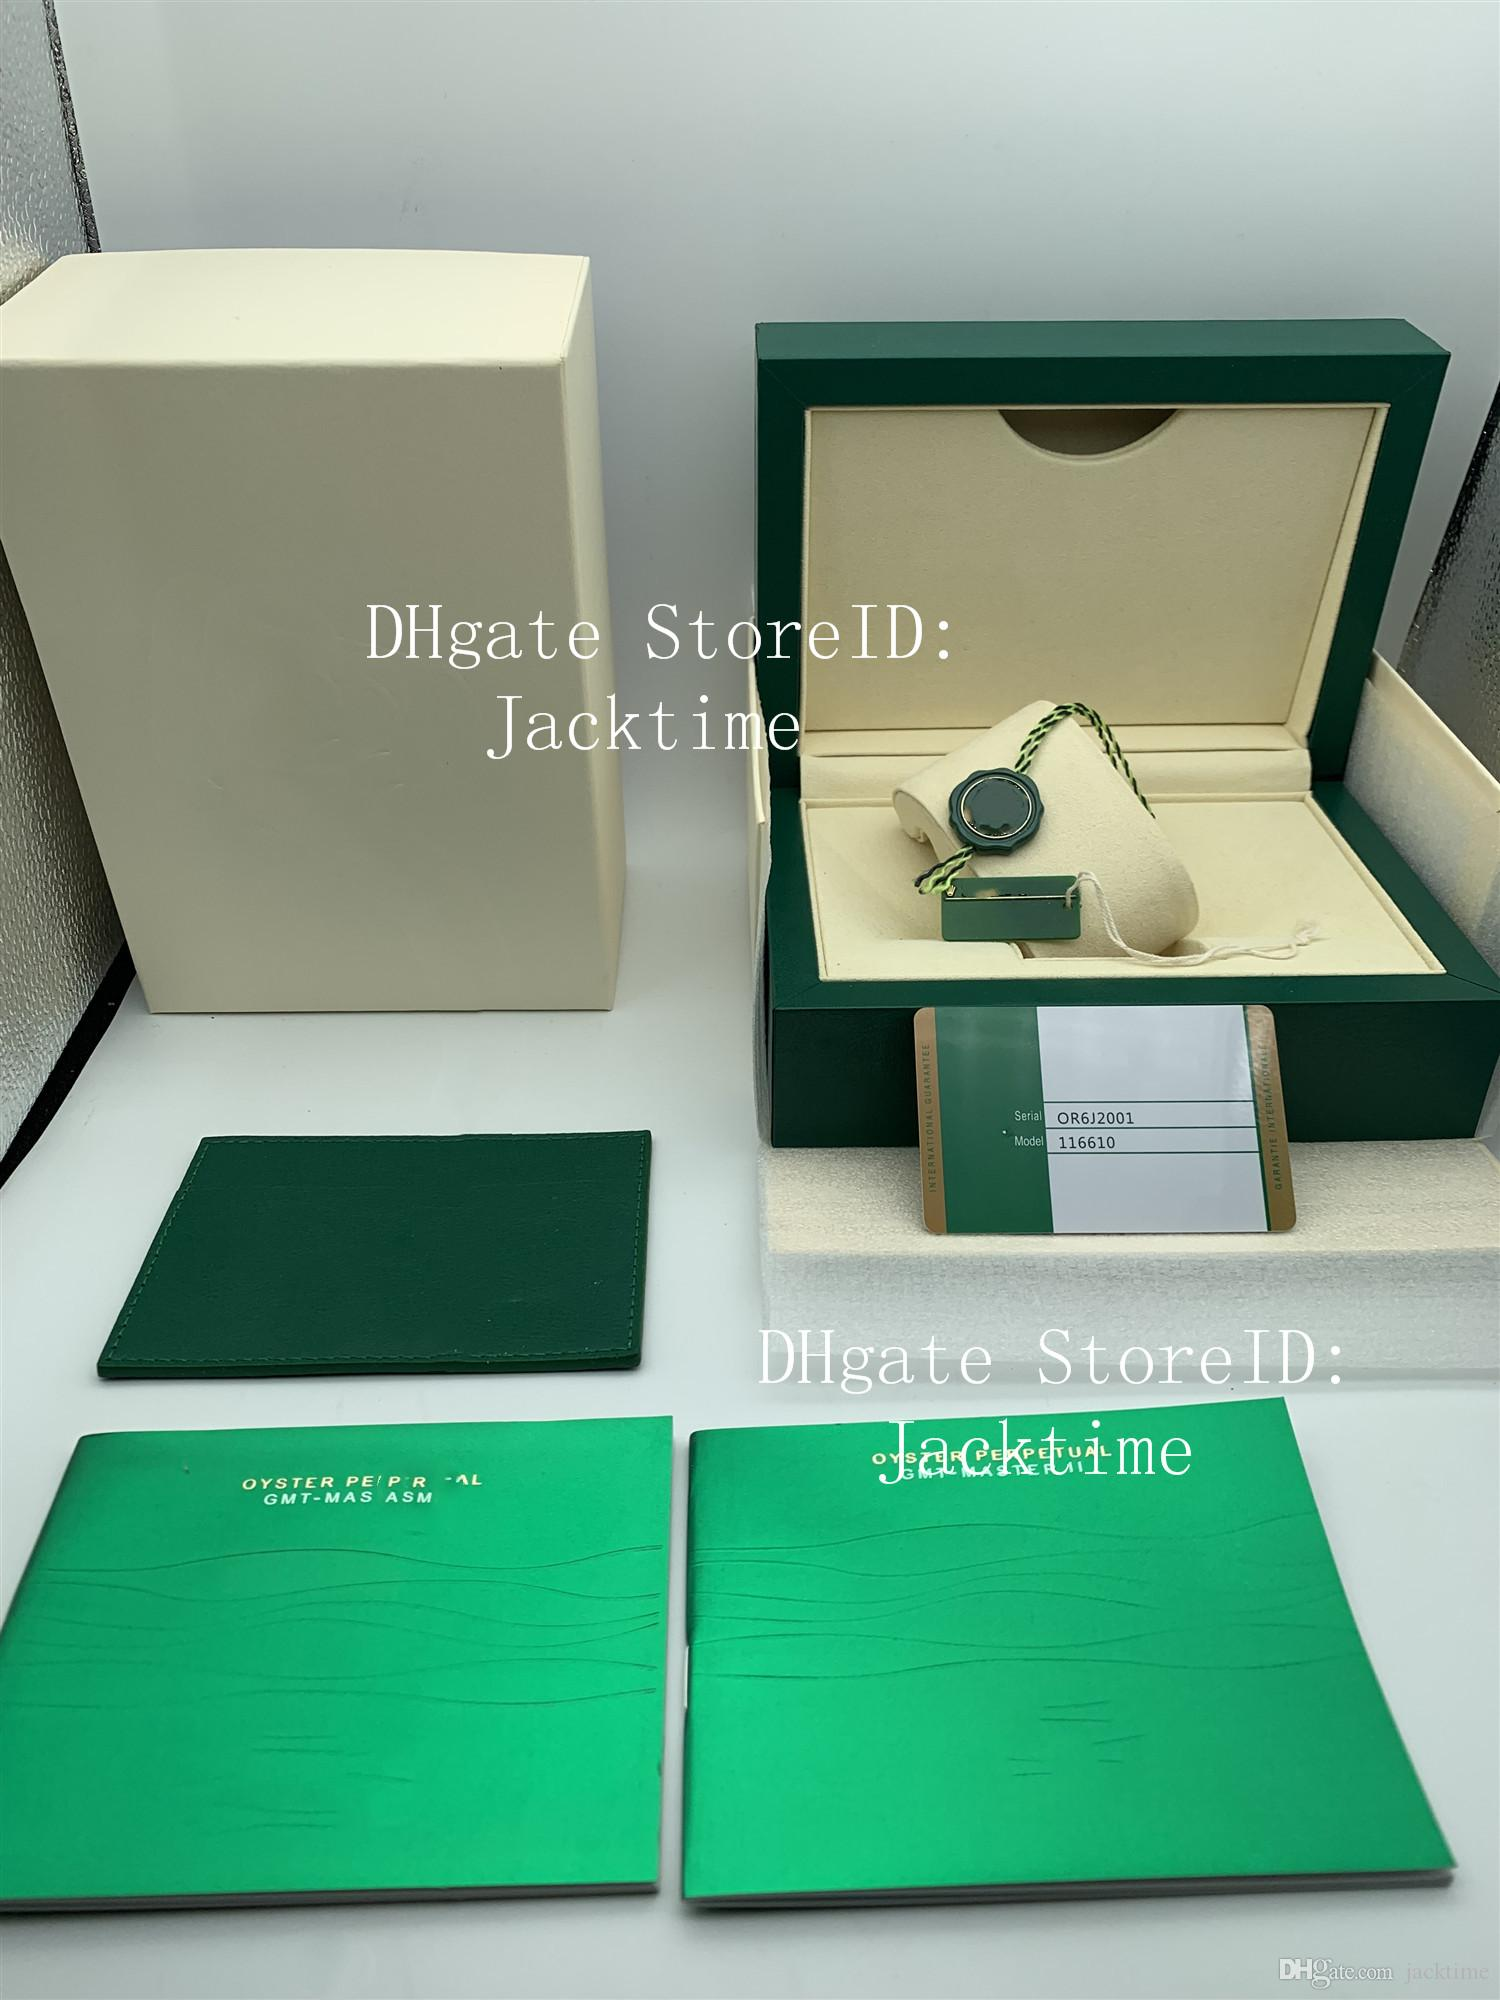 Best Quality Luxury Green Watch Box Gift Case For 116610 Watches Booklet Card Tags And Papers In English Swiss Watches Boxes Handbag